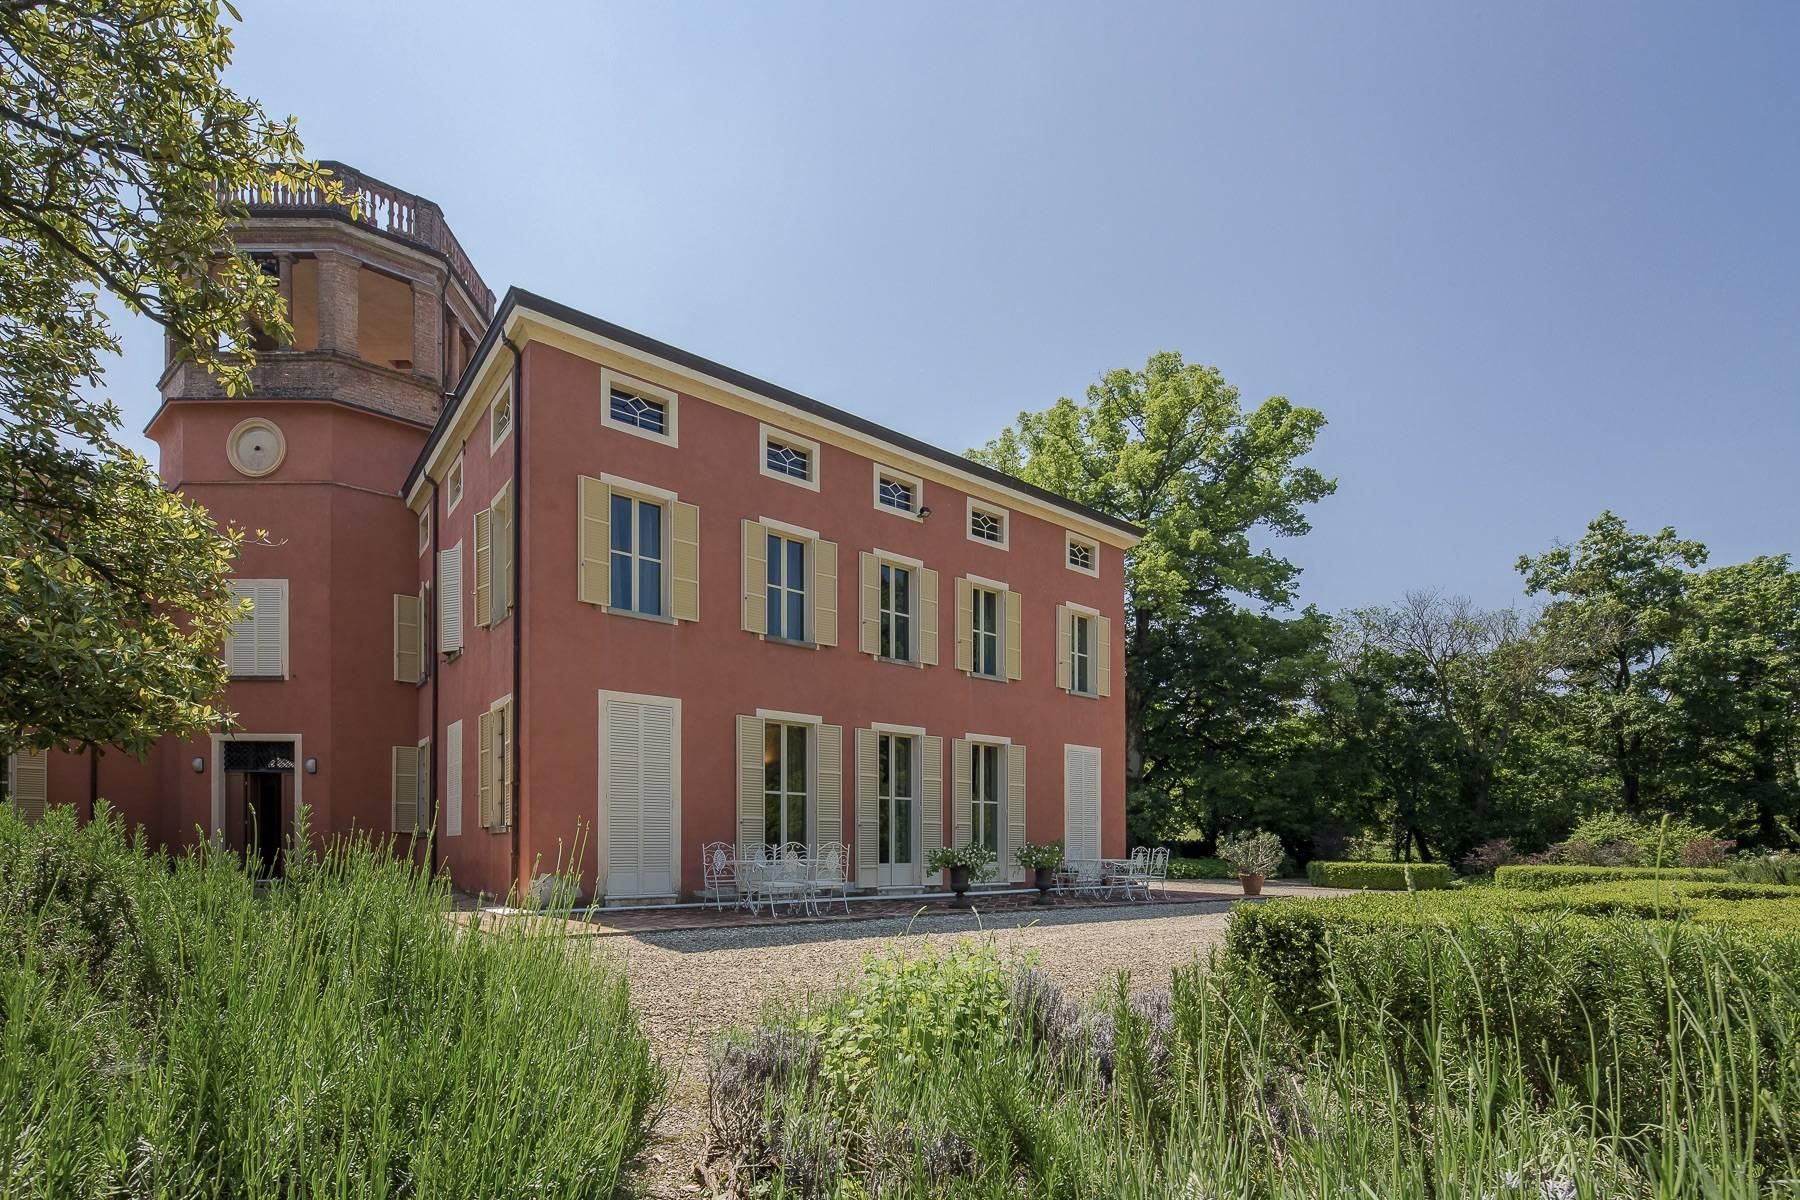 Delightful nineteenth century villa with park - 10